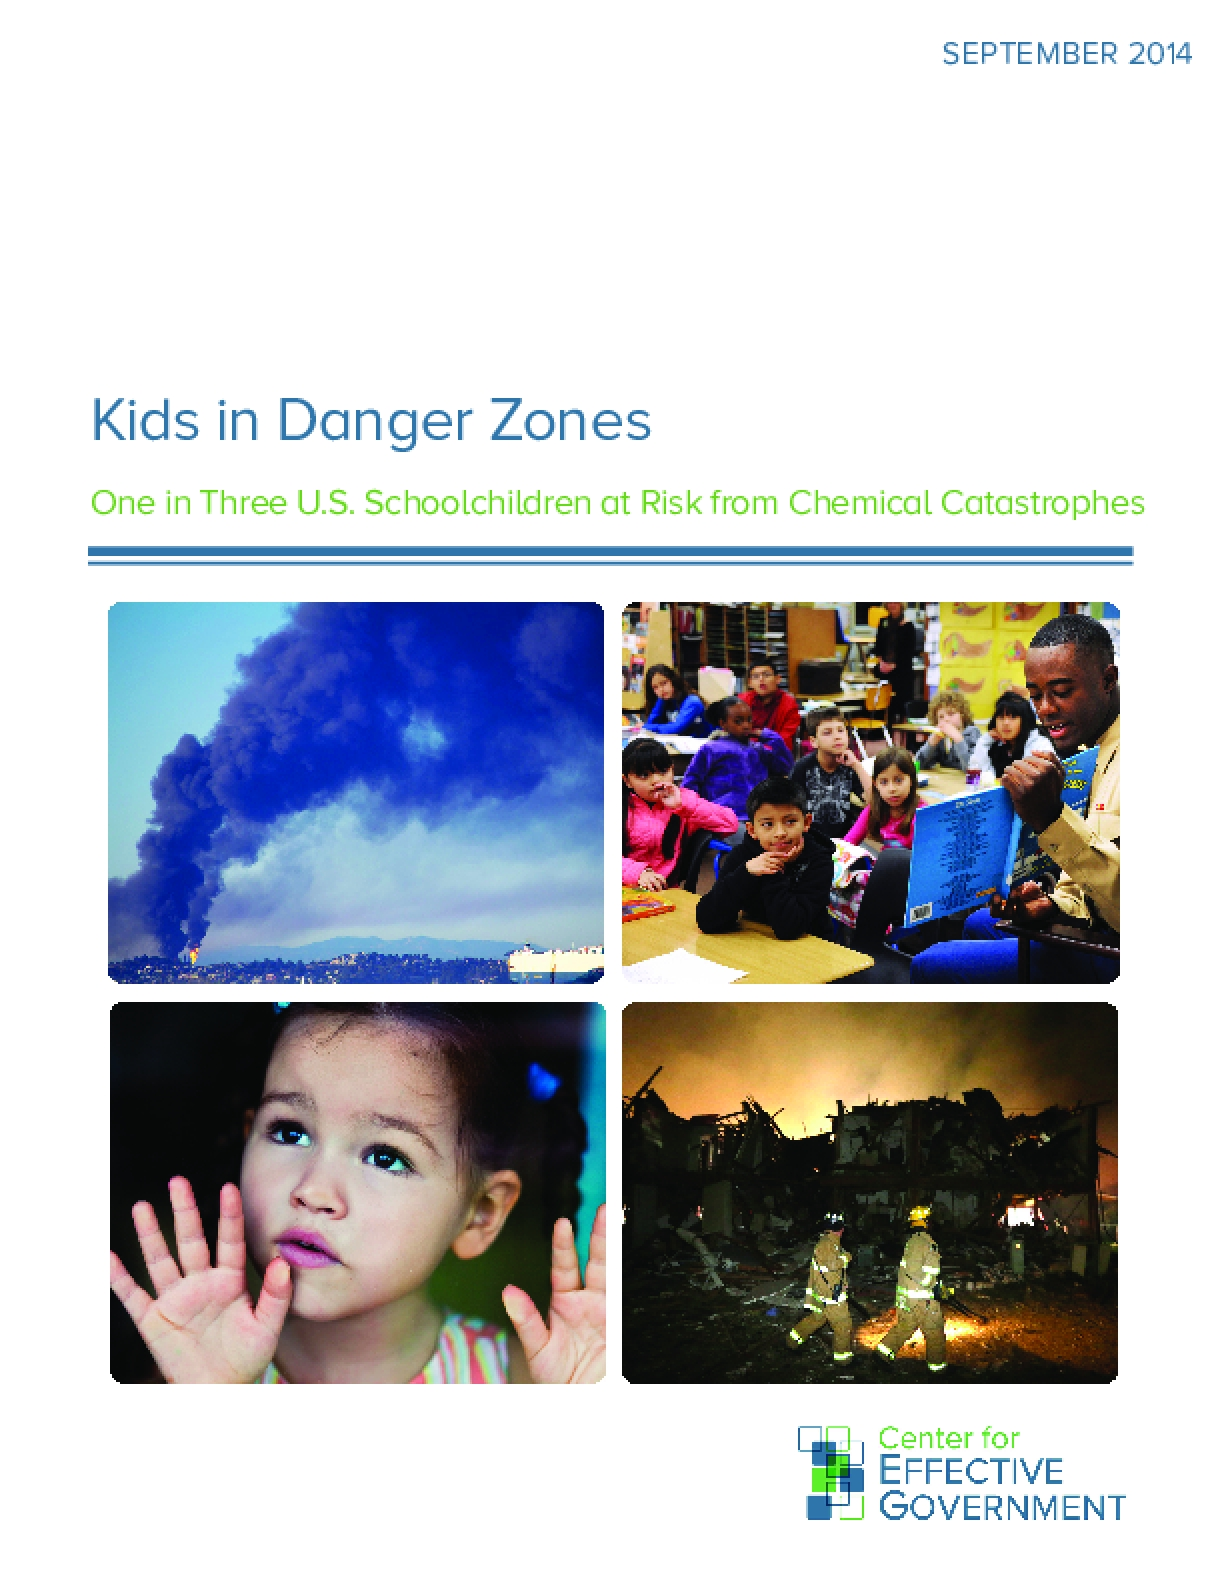 Kids in Danger Zones: One in Three U.S. Schoolchildren at Risk from Chemical Catastrophes